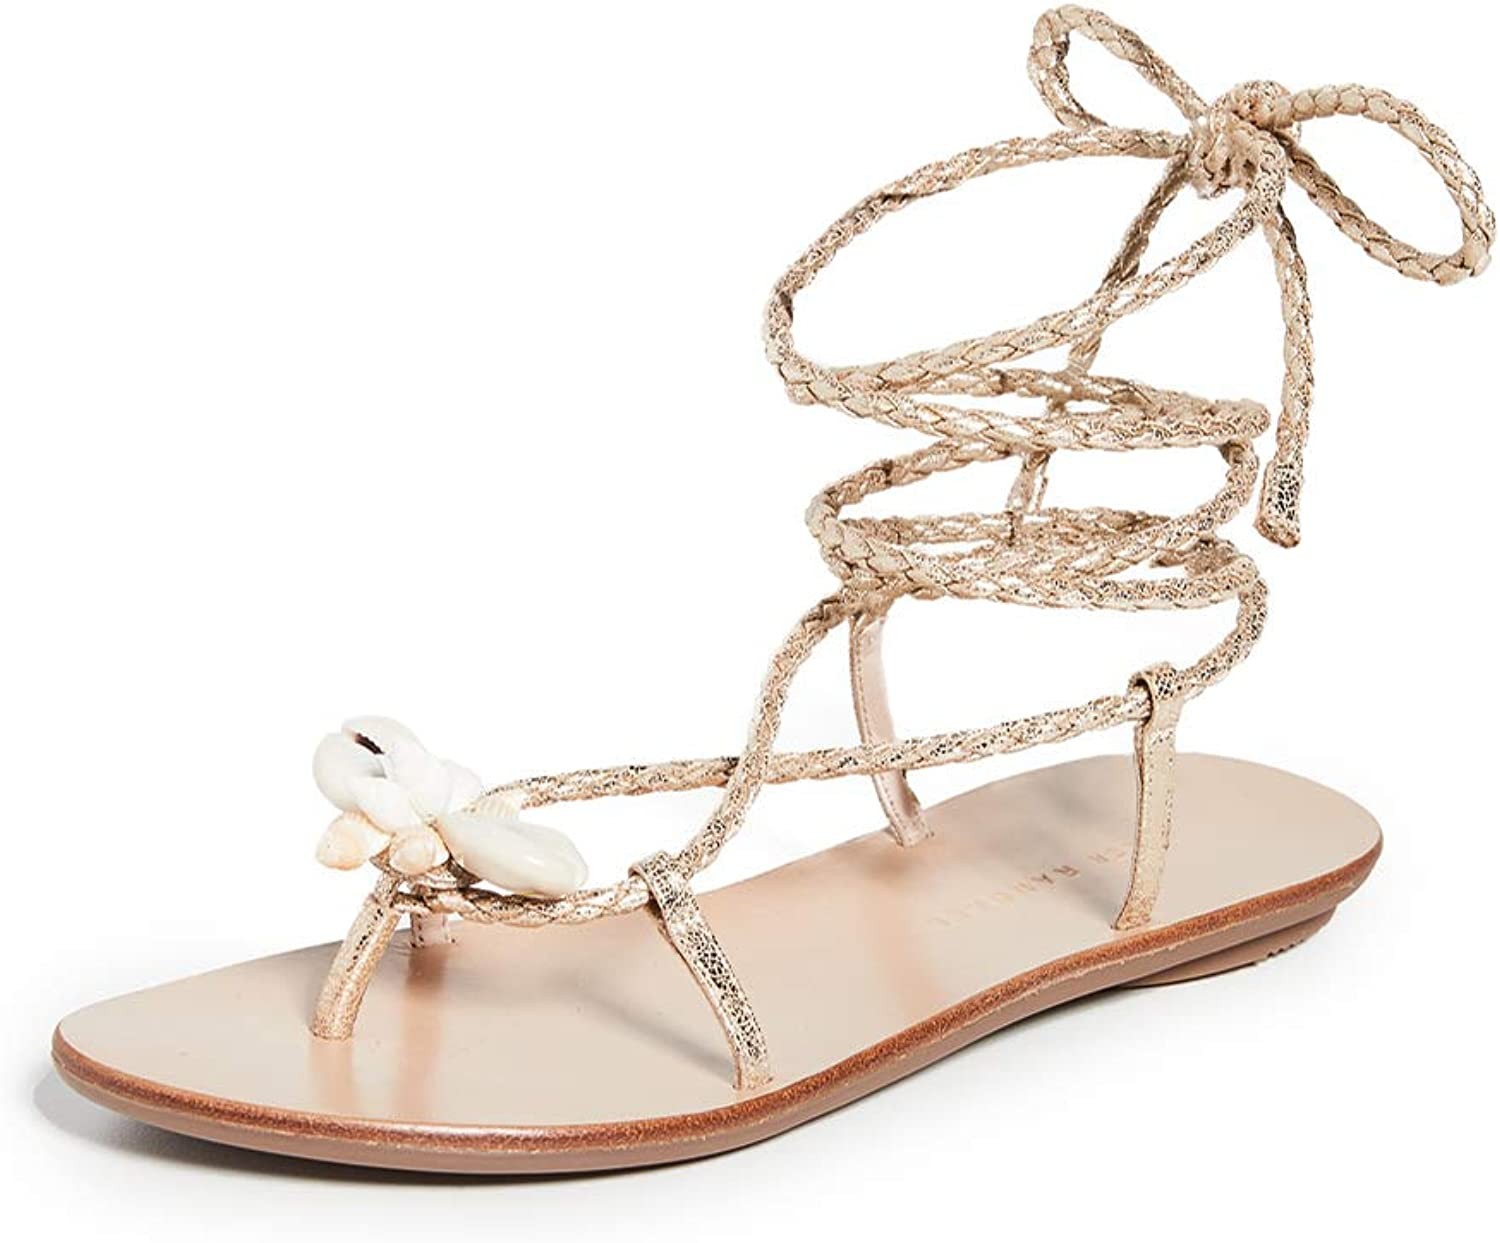 Max 83% OFF Loeffler All stores are sold Randall Women's Sandal Shelly Wrap